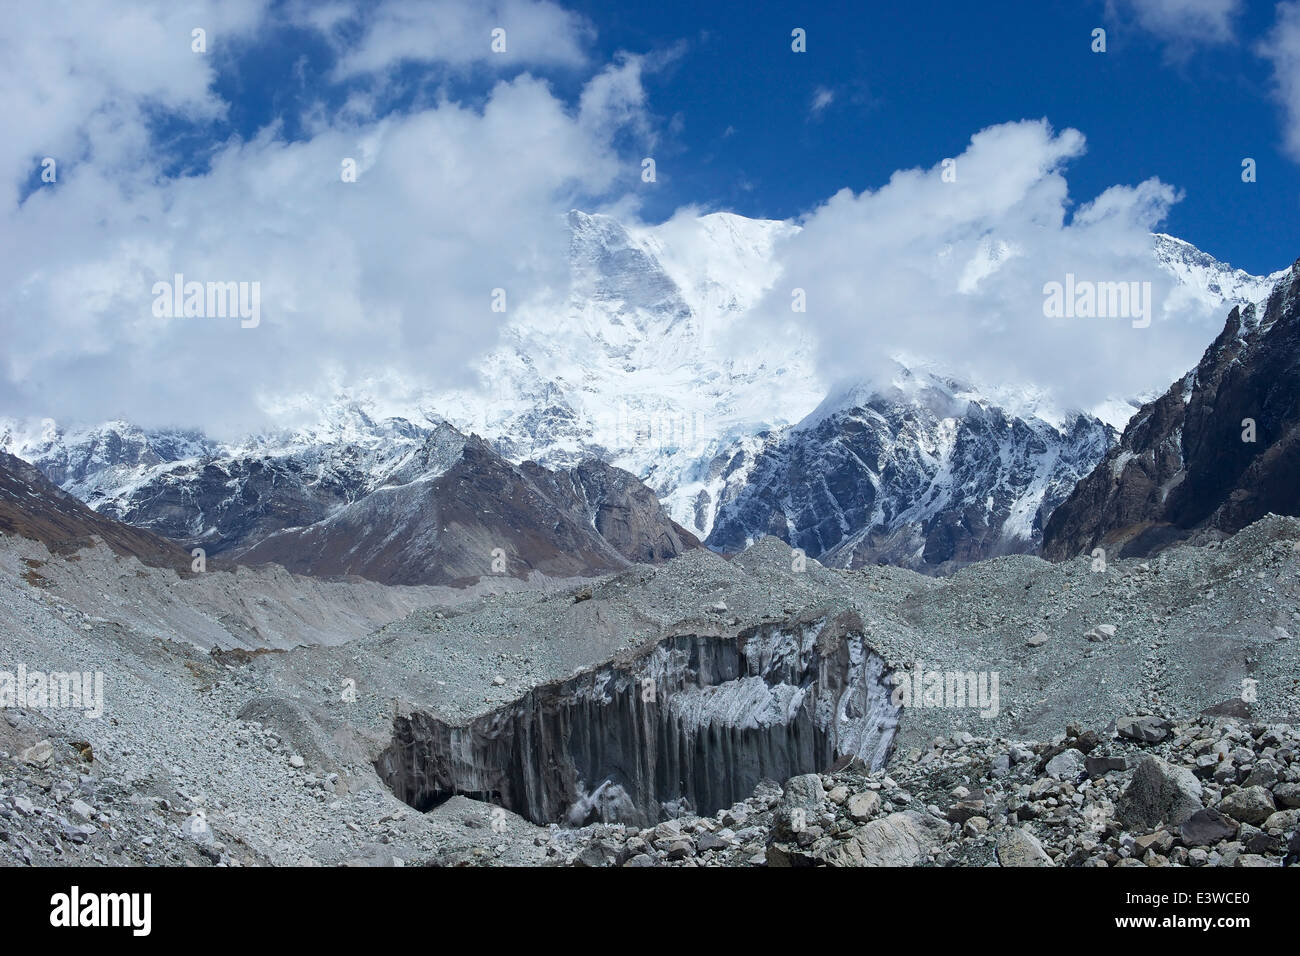 Moraine on Ngozumpa glacier, between Gokyo and Dragnag, Solukhumbu region, Sagarmatha NP, Nepal, Asia - Stock Image